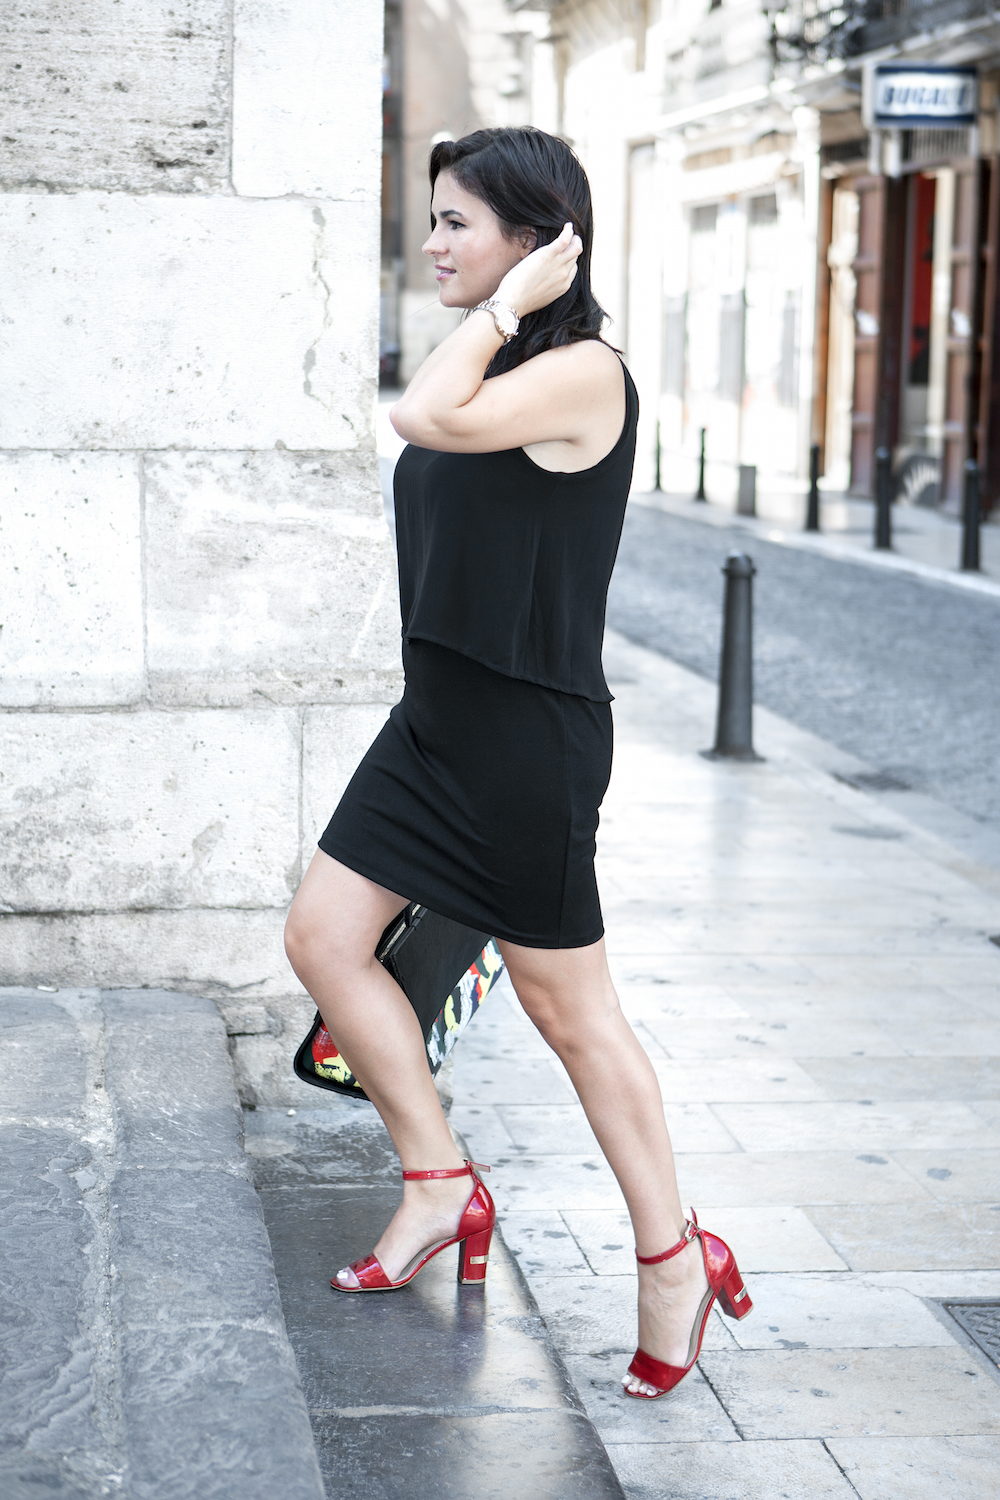 lady wearing a black dress and red shoes